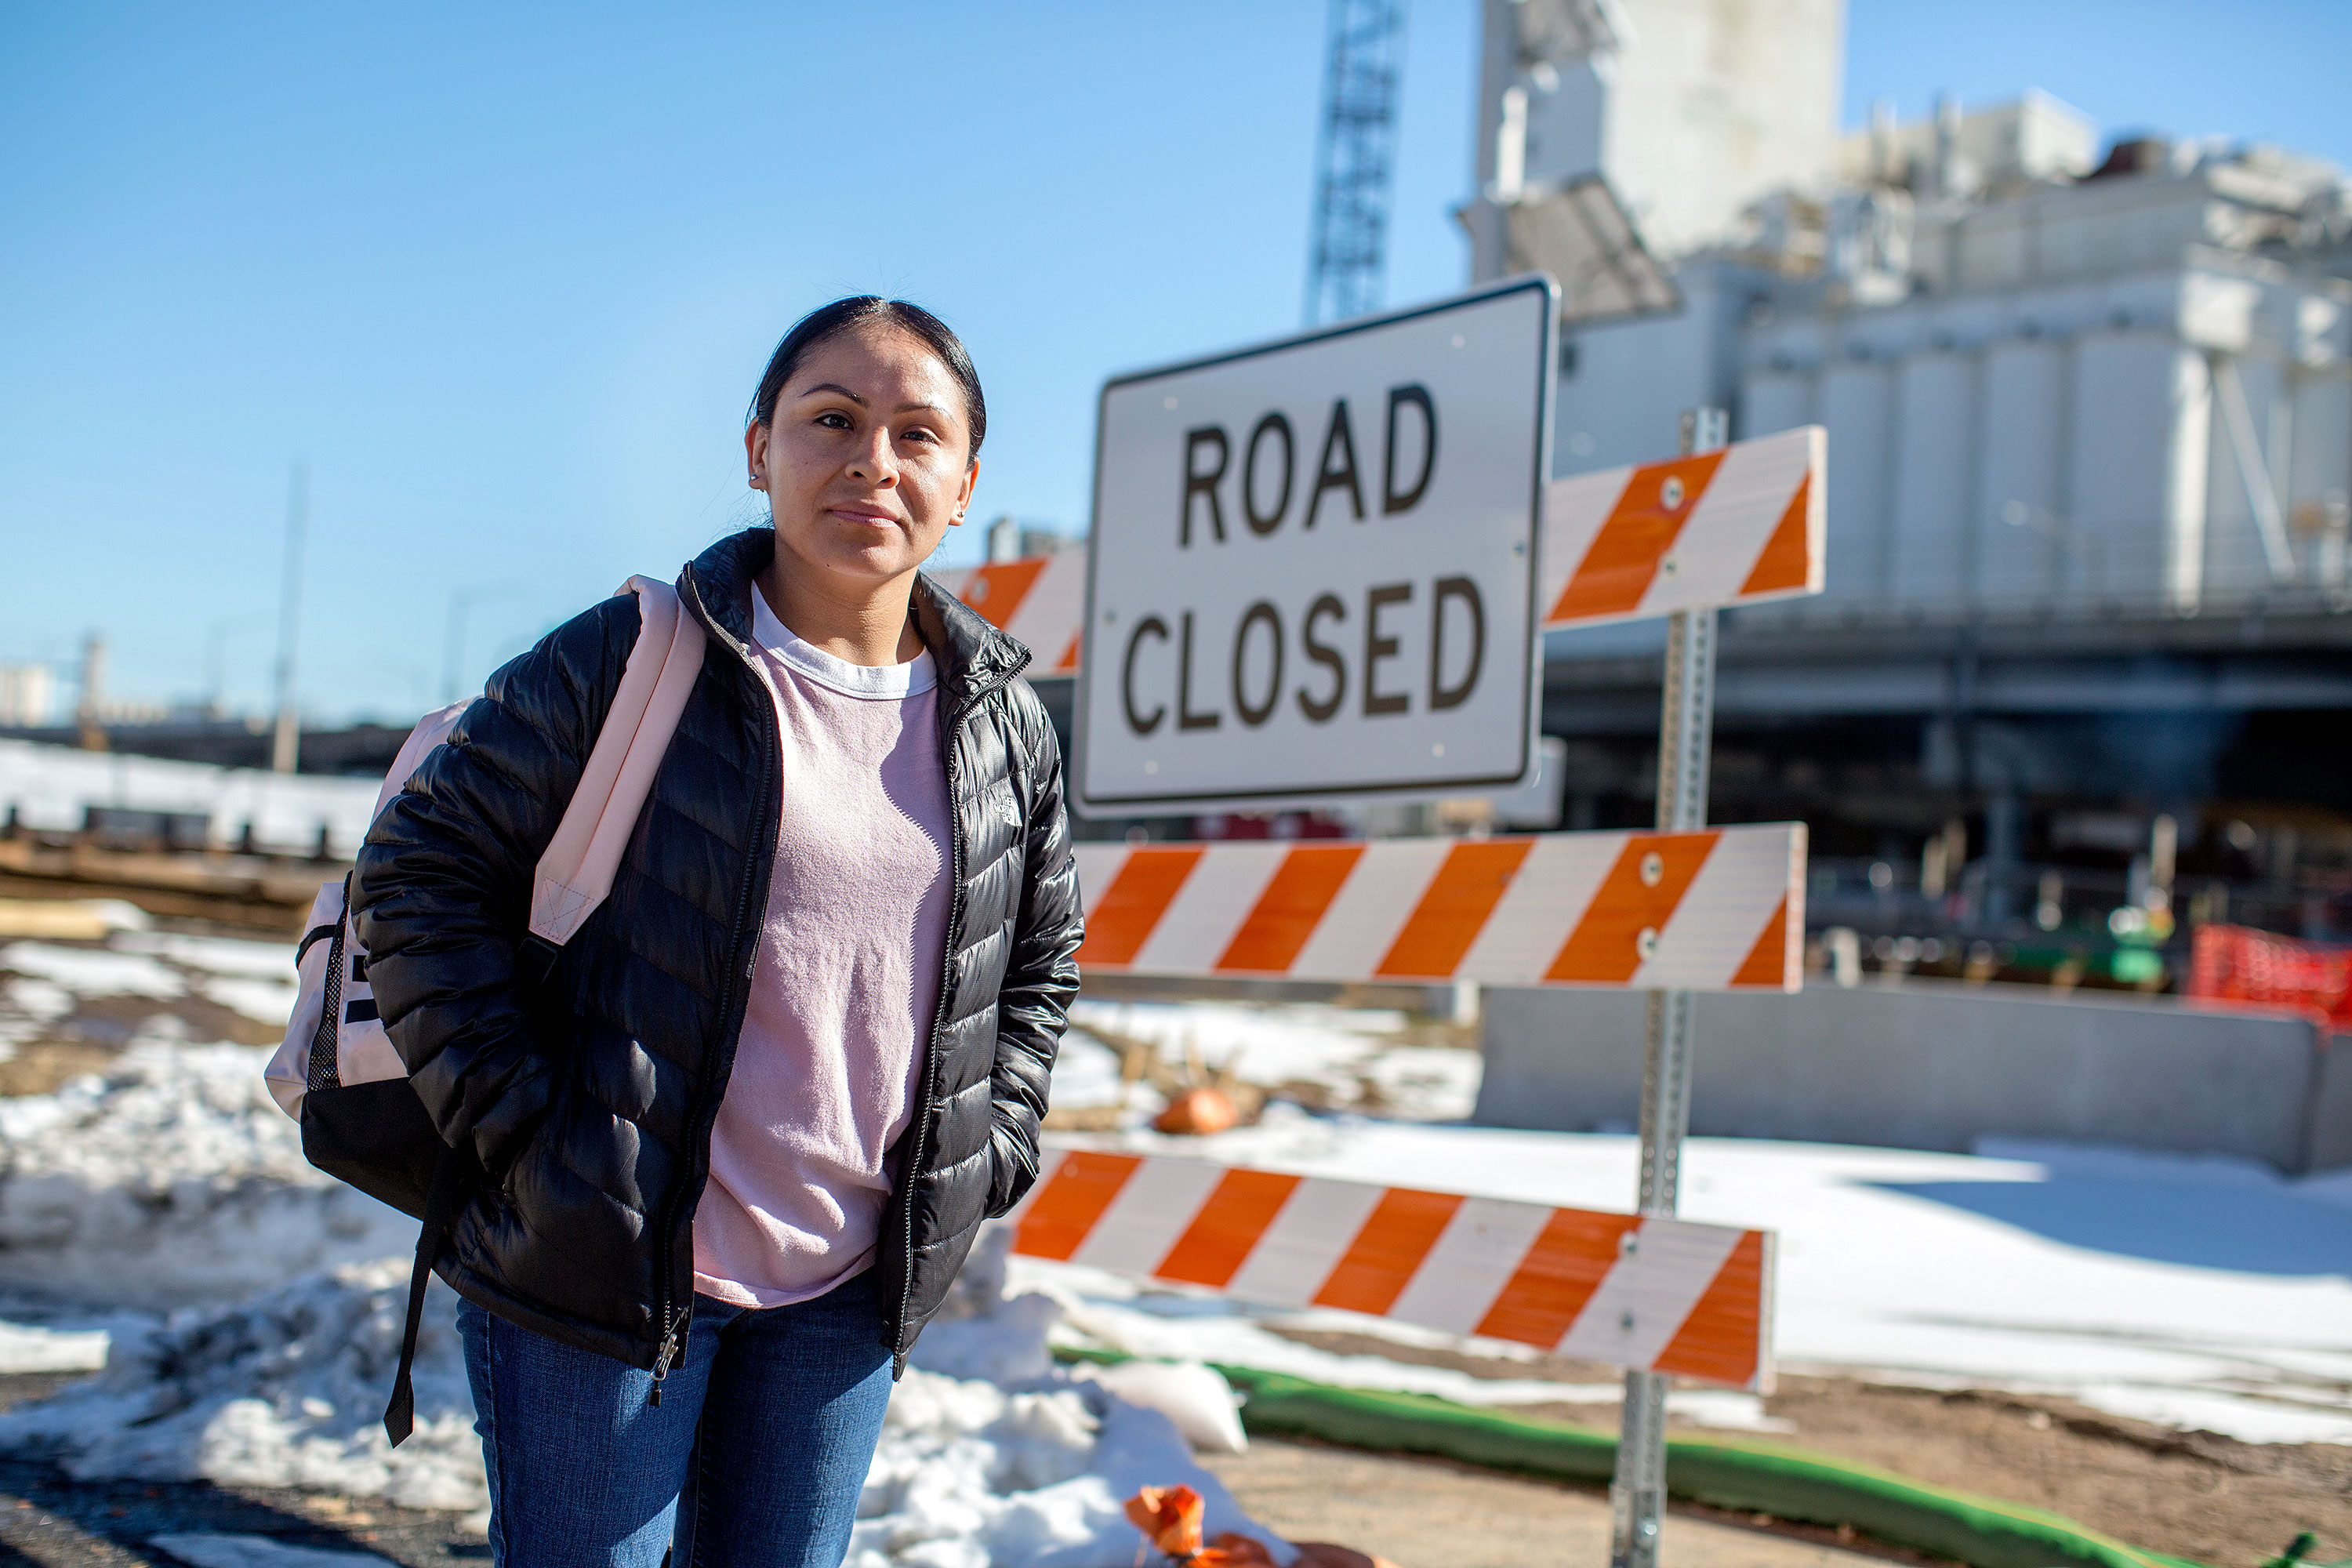 <p>Gabby Acevedo, a member of the Globeville, Elyria-Swansea Coalition, stands near the construction for the Central 70 project that disrupted lives in the neighborhood. She was brought to the U.S. as a child, and has lived in the area for more than 10 years.</p>